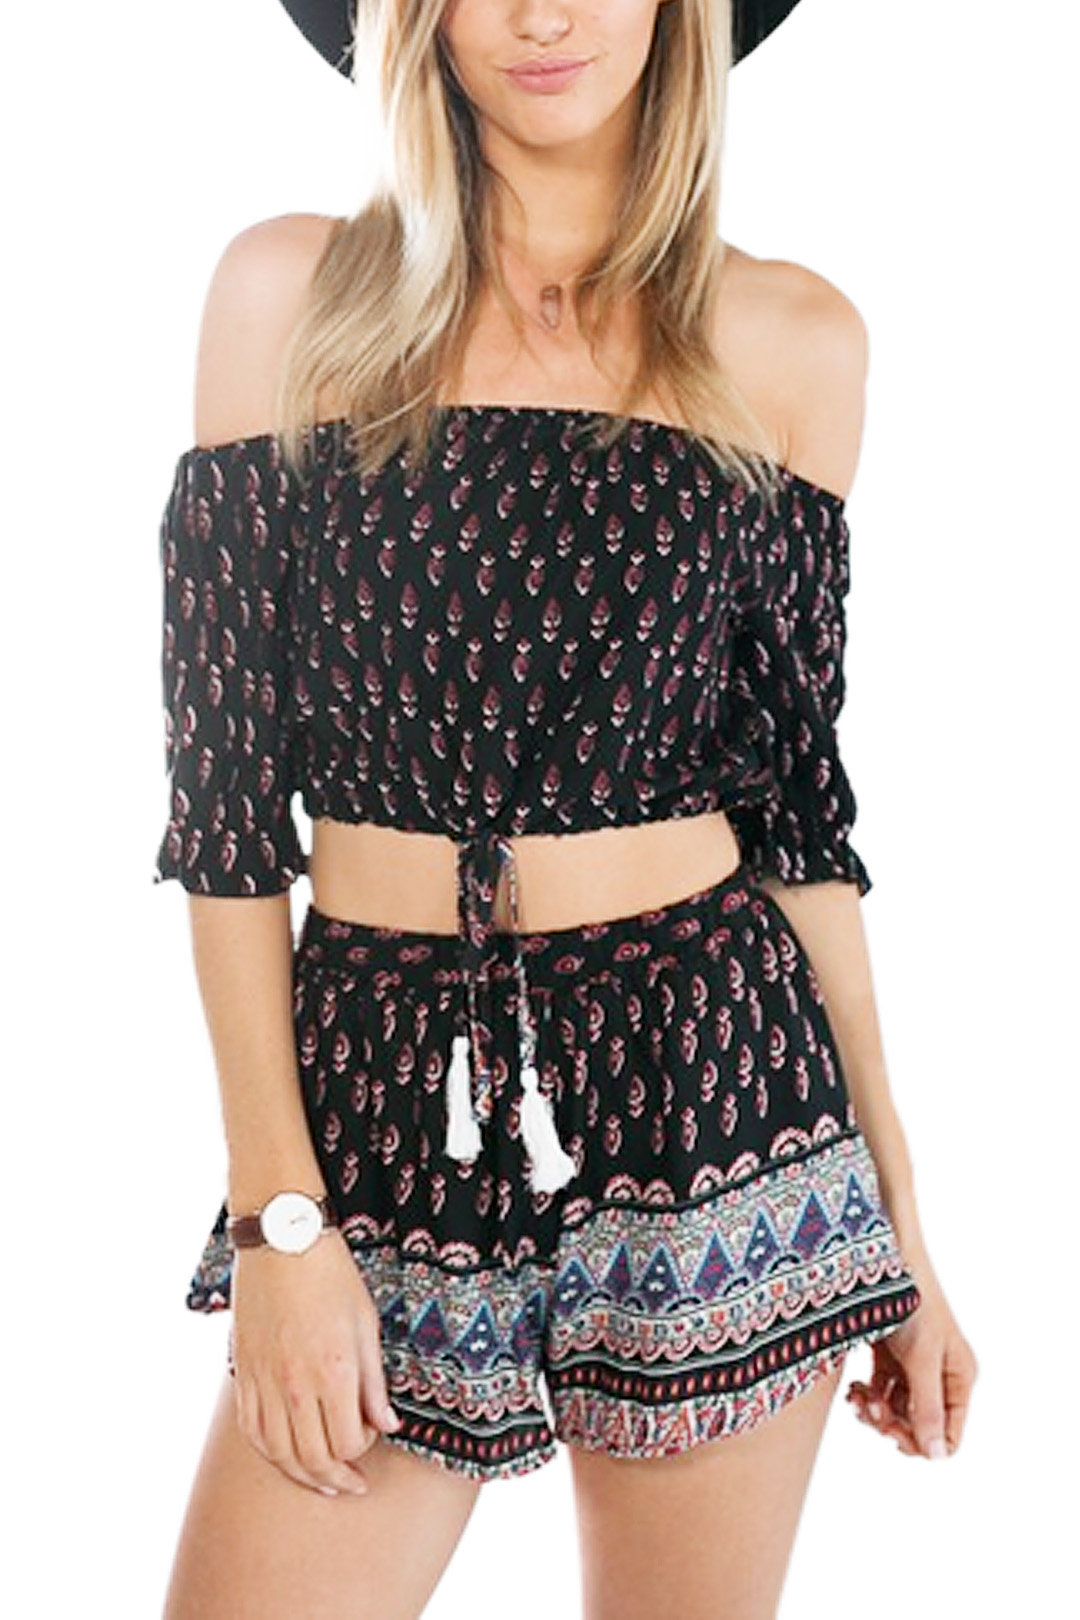 Spiritual Hippie Cropped Off Shoulder Top With All Over Random Print Co-Ord